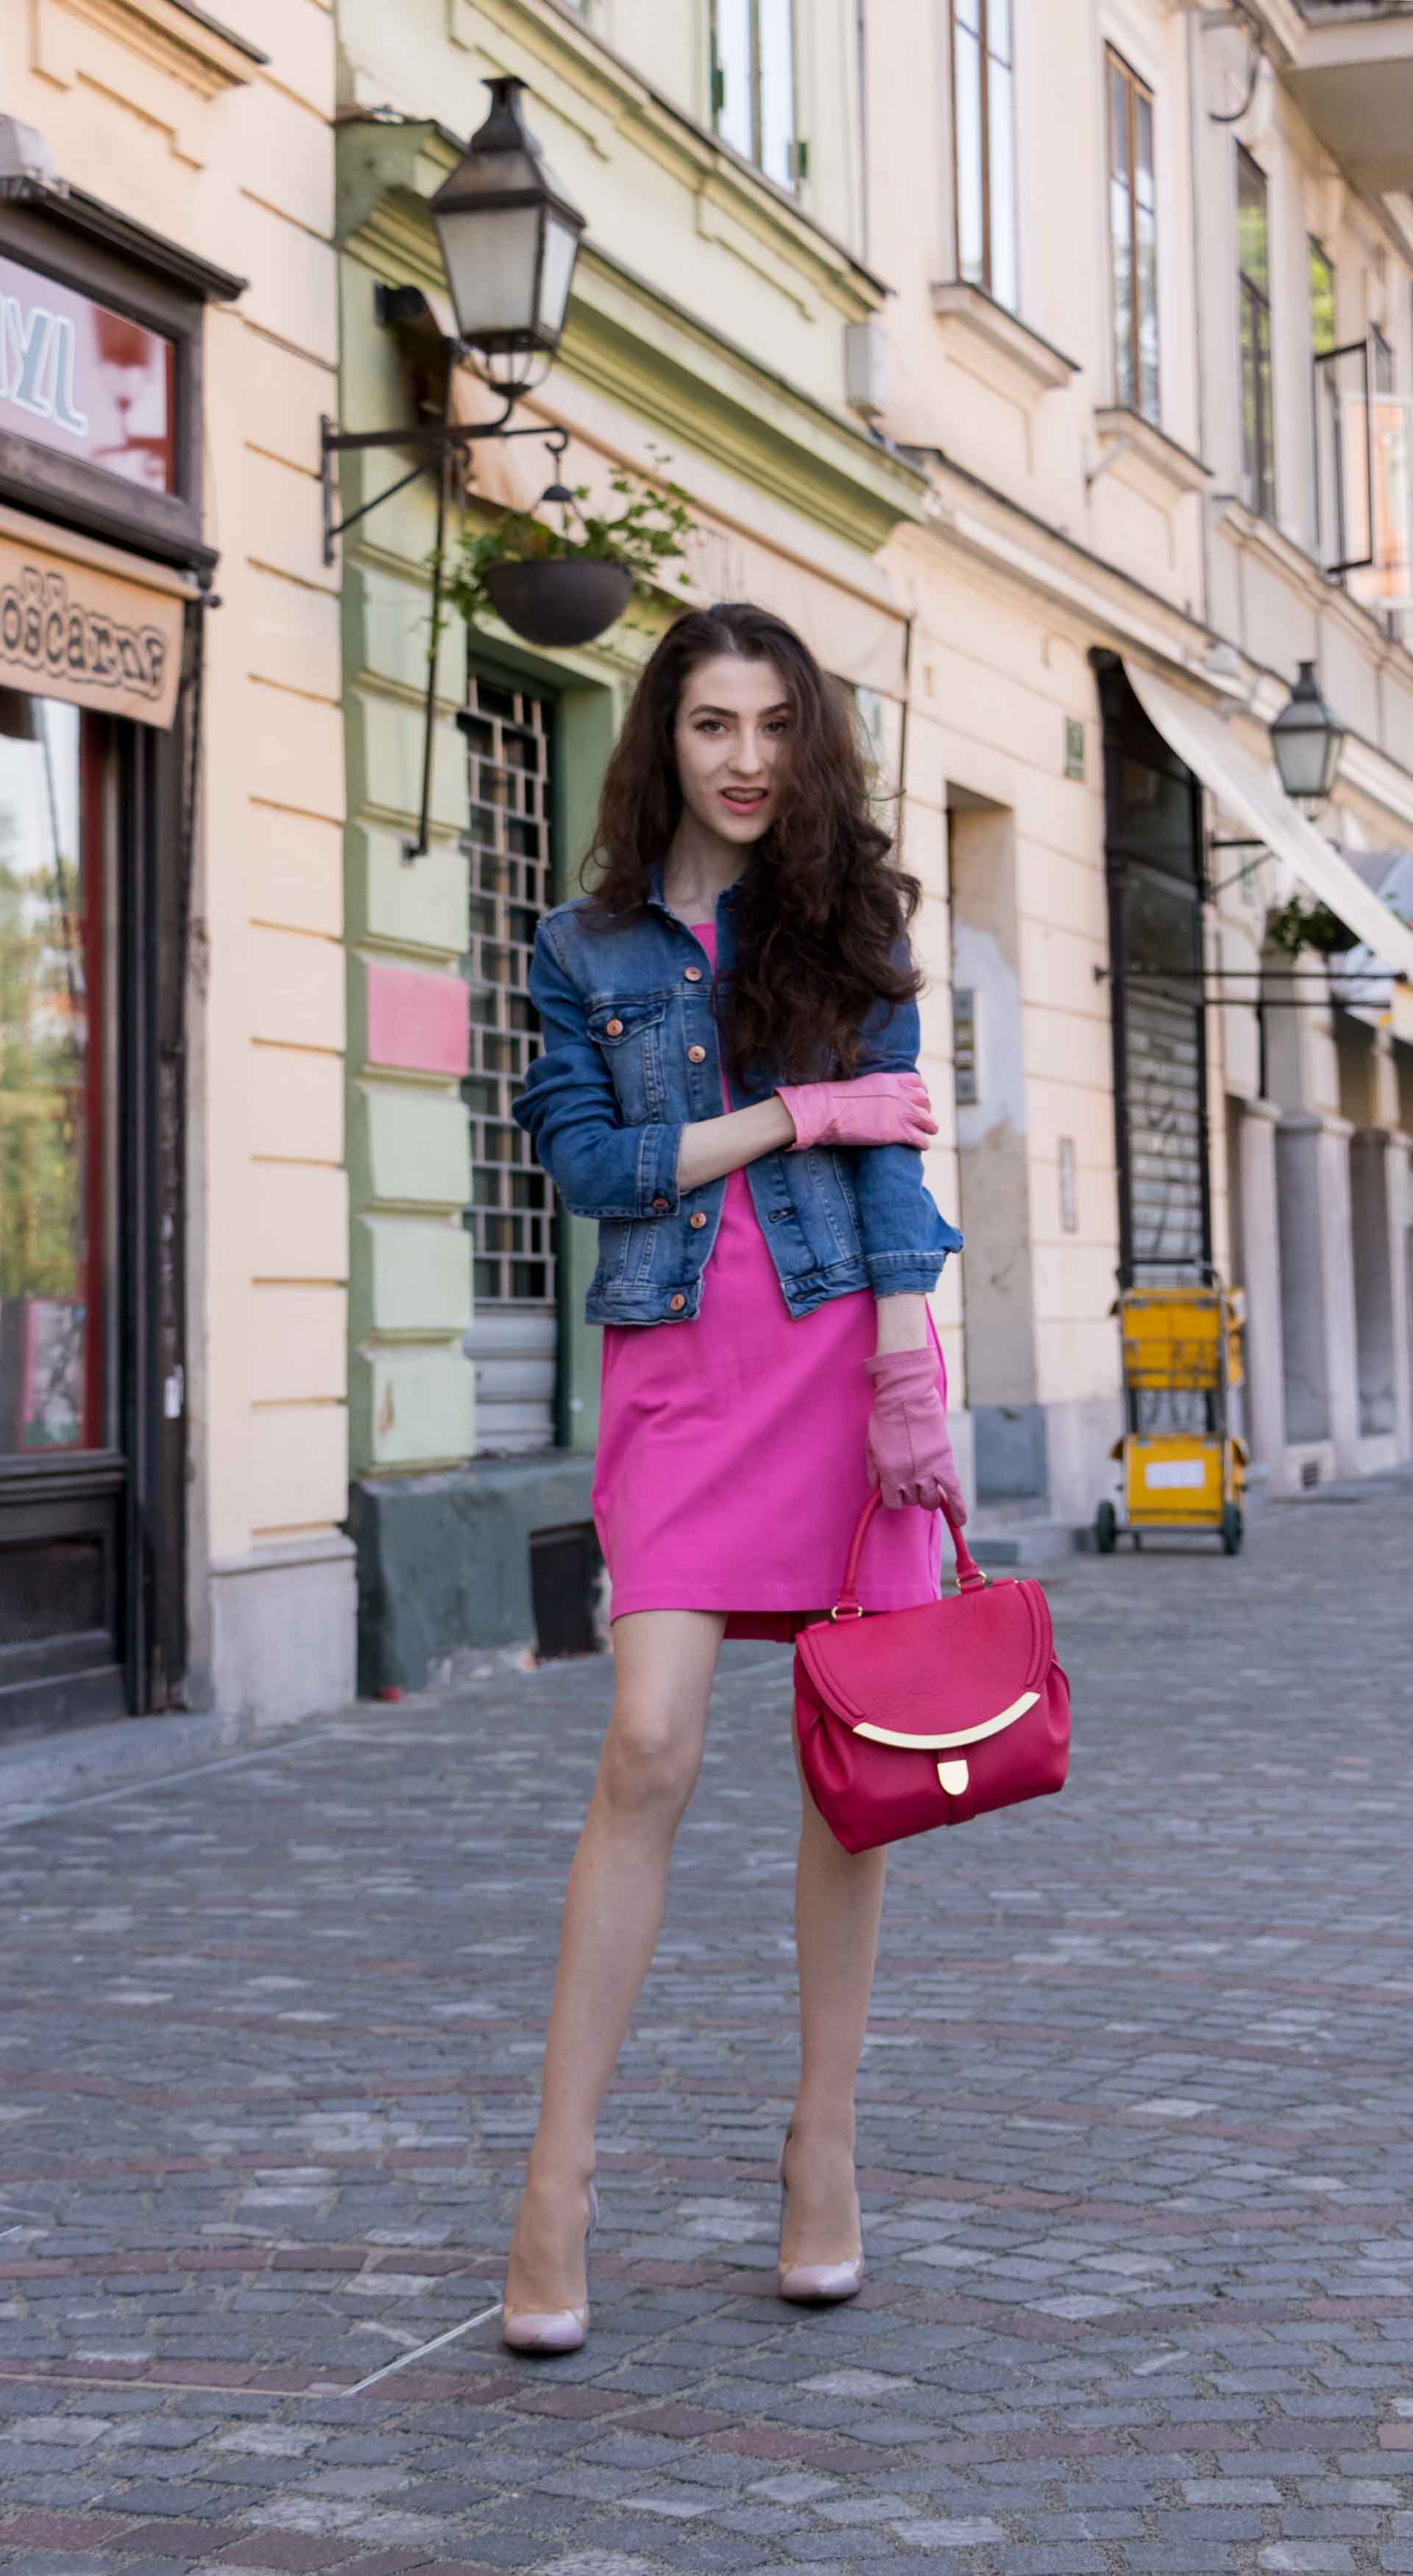 Veronika Lipar Fashion Blogger of Brunette from Wall Street wearing H&M denim jacket, pink shift cady dress, blush Gianvito Rossi plexi pumps, pink Forzieri gloves, See by Chloé pink top handle bag, Adam Selman x Le Specs white cat eye Lolita sunglasses while standing on the street in Ljubljana